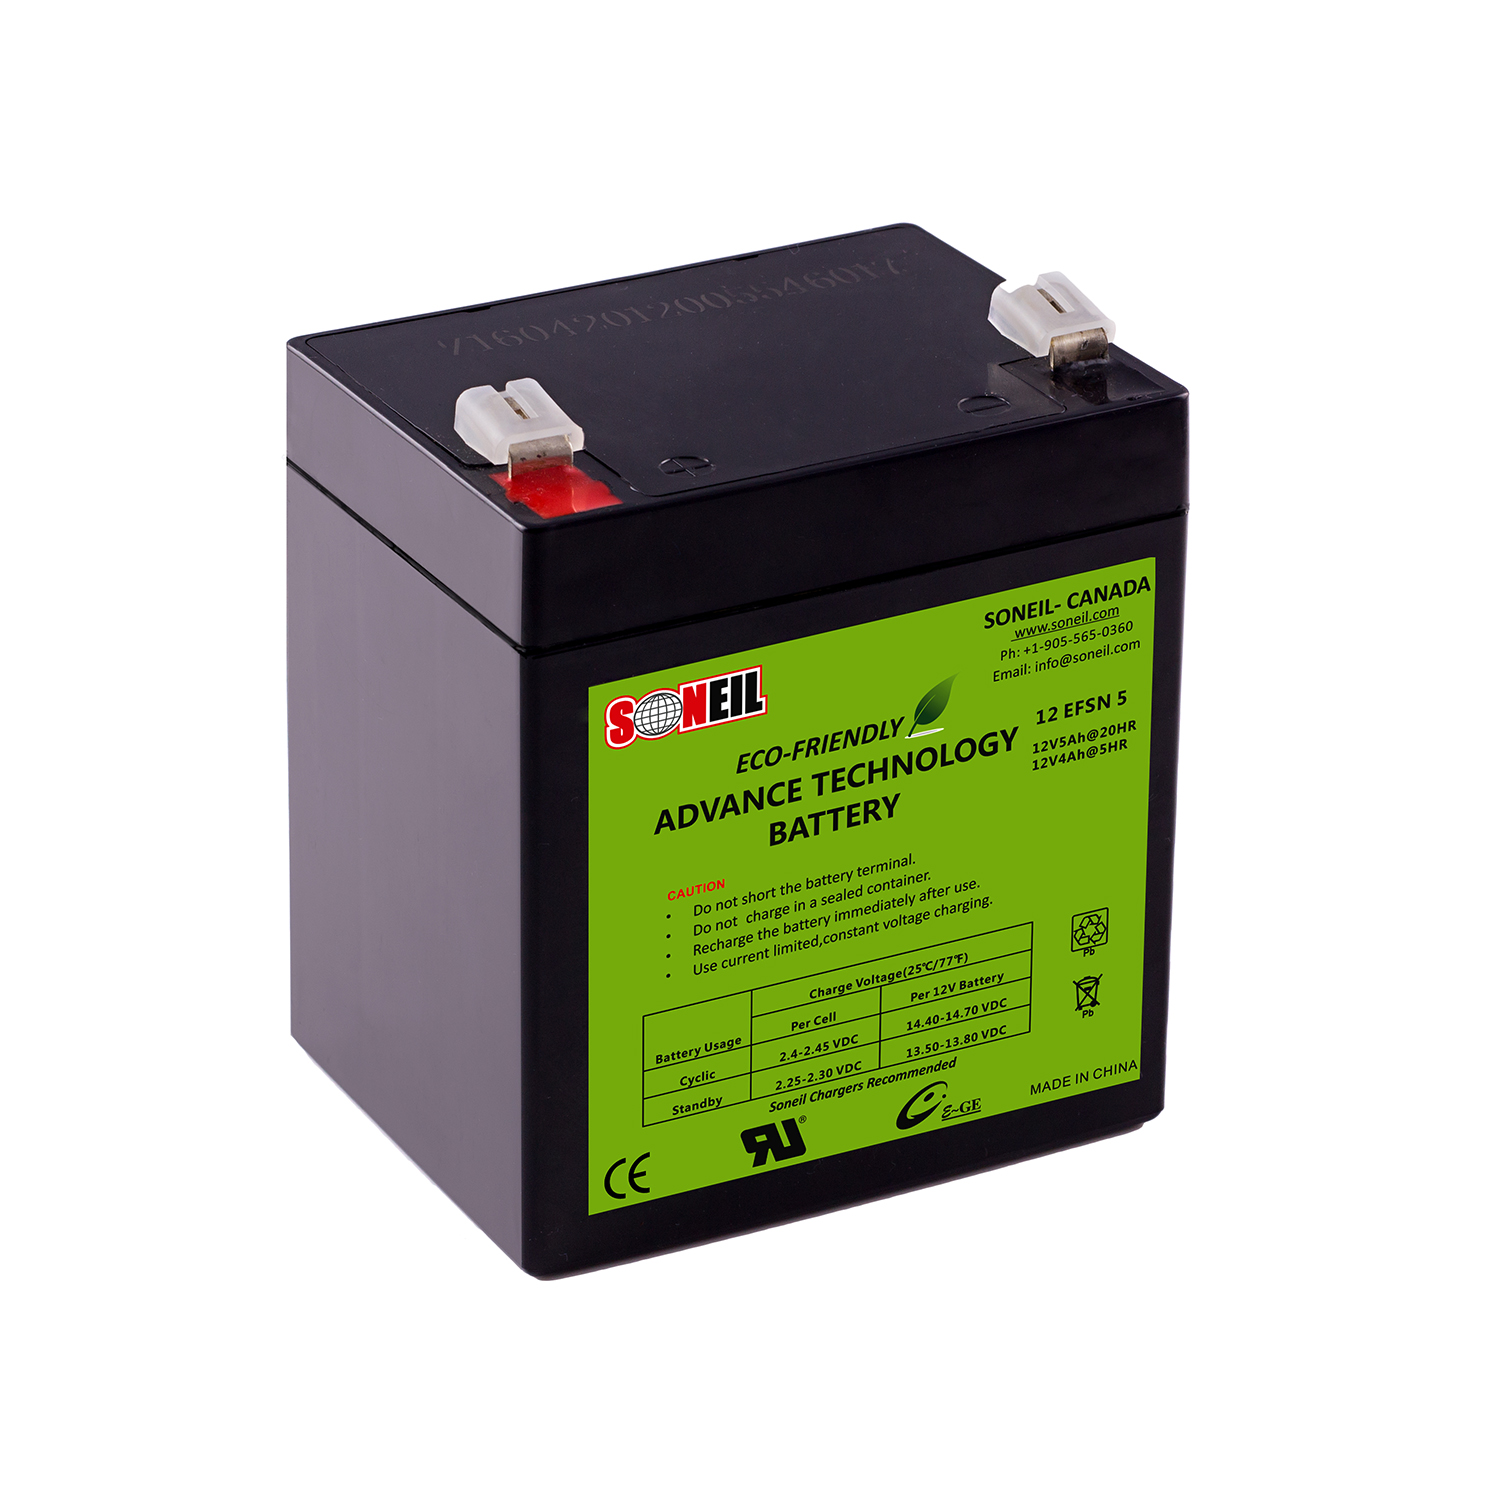 12V 5Ah Advance Technology Battery